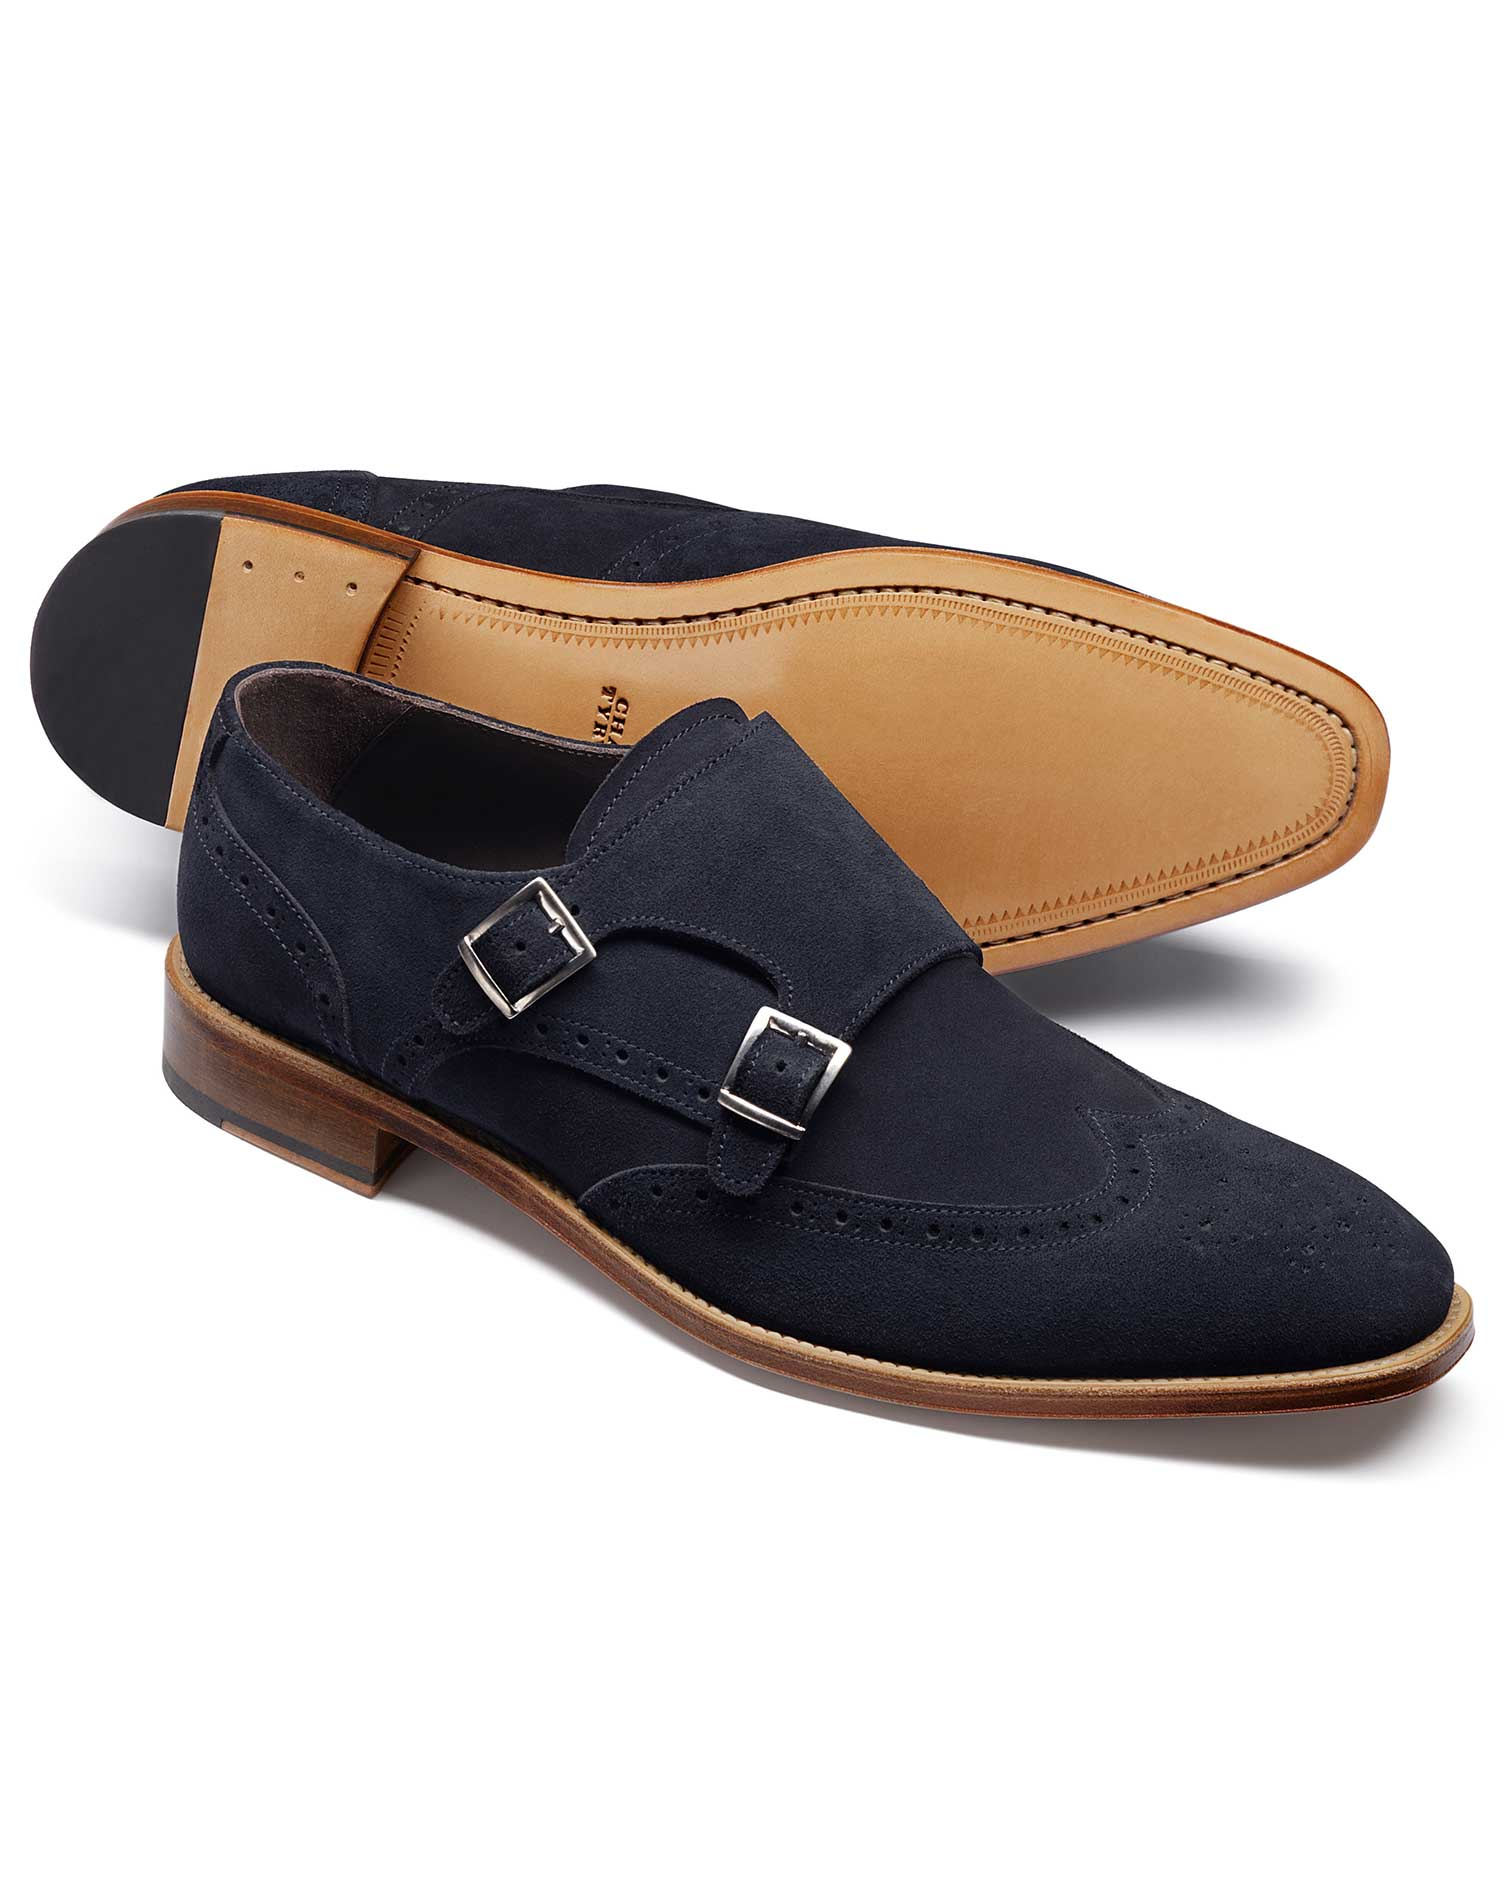 Navy Suede Double Buckle Monk Shoe Size 10.5 R by Charles Tyrwhitt